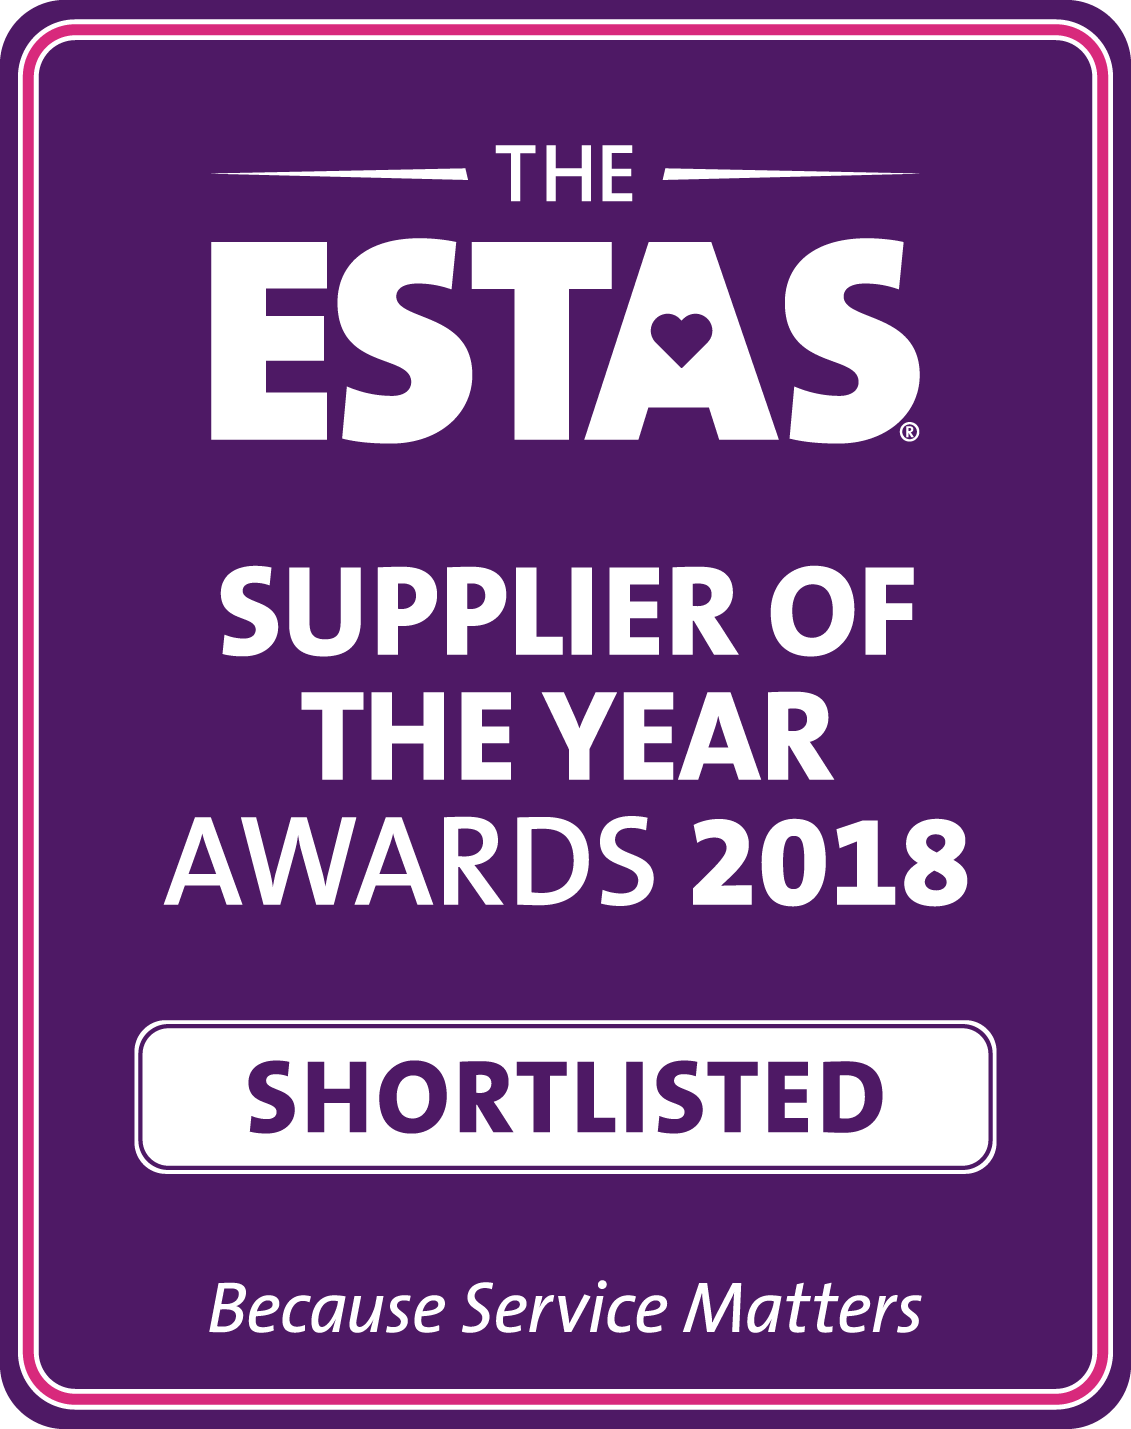 Agency Express Make the 2018 ESTAS Shortlist